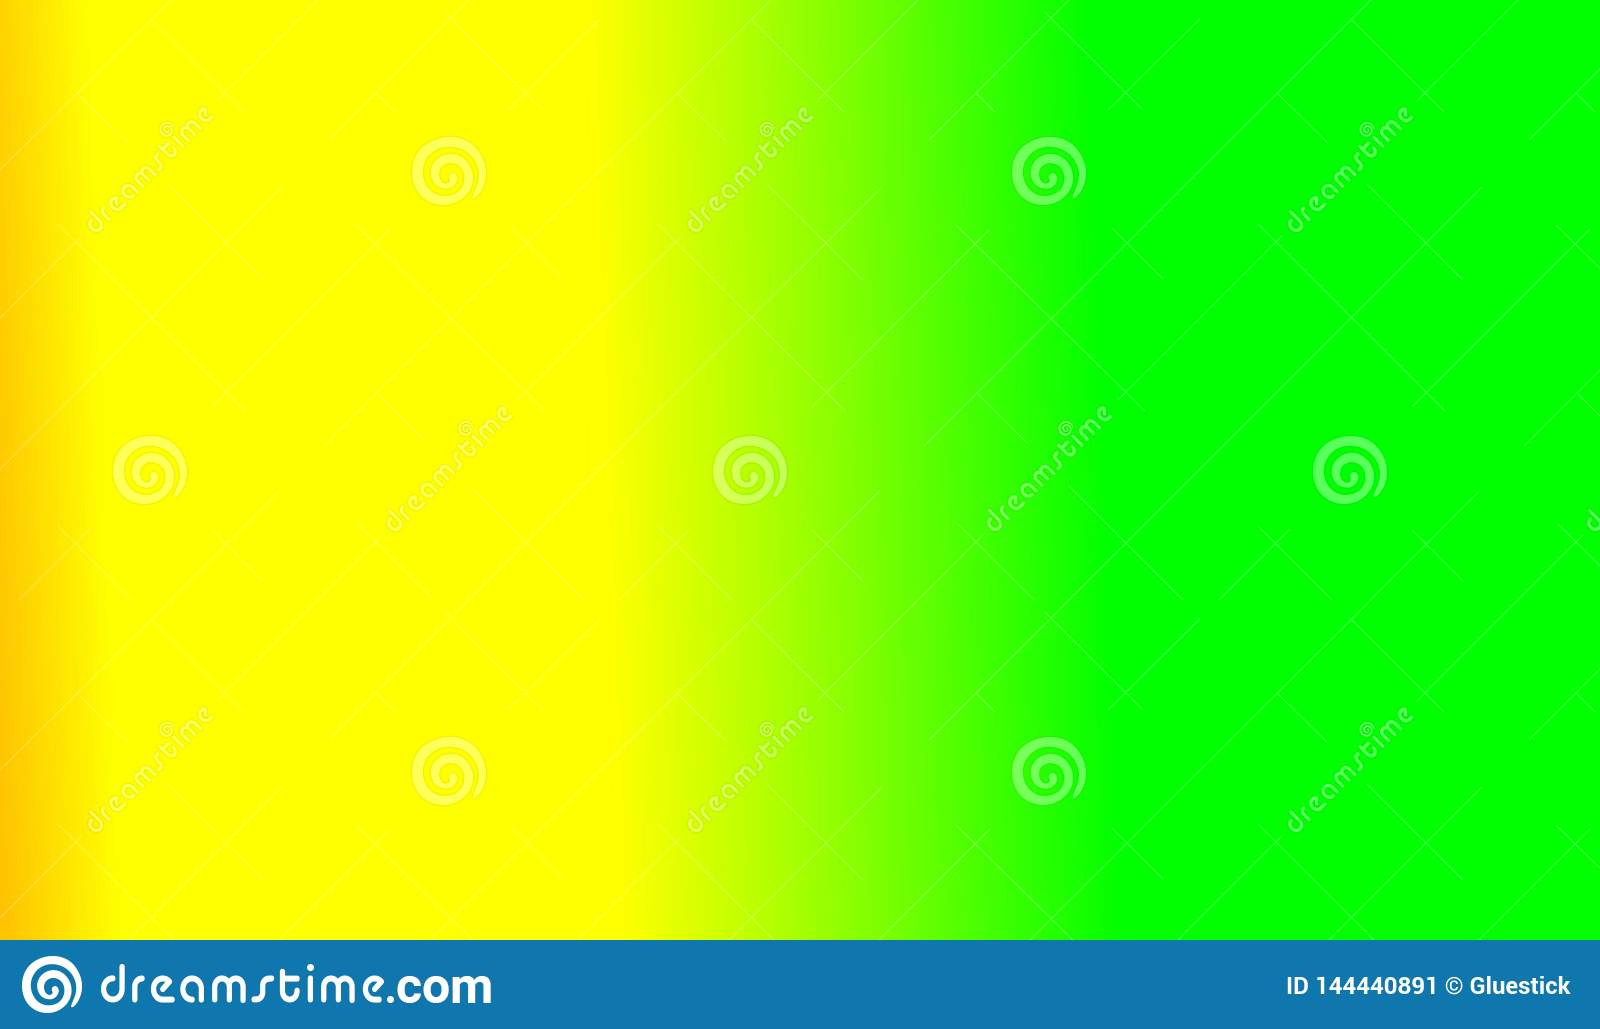 Lime Green Abstract Gradient Background Stock Illustration